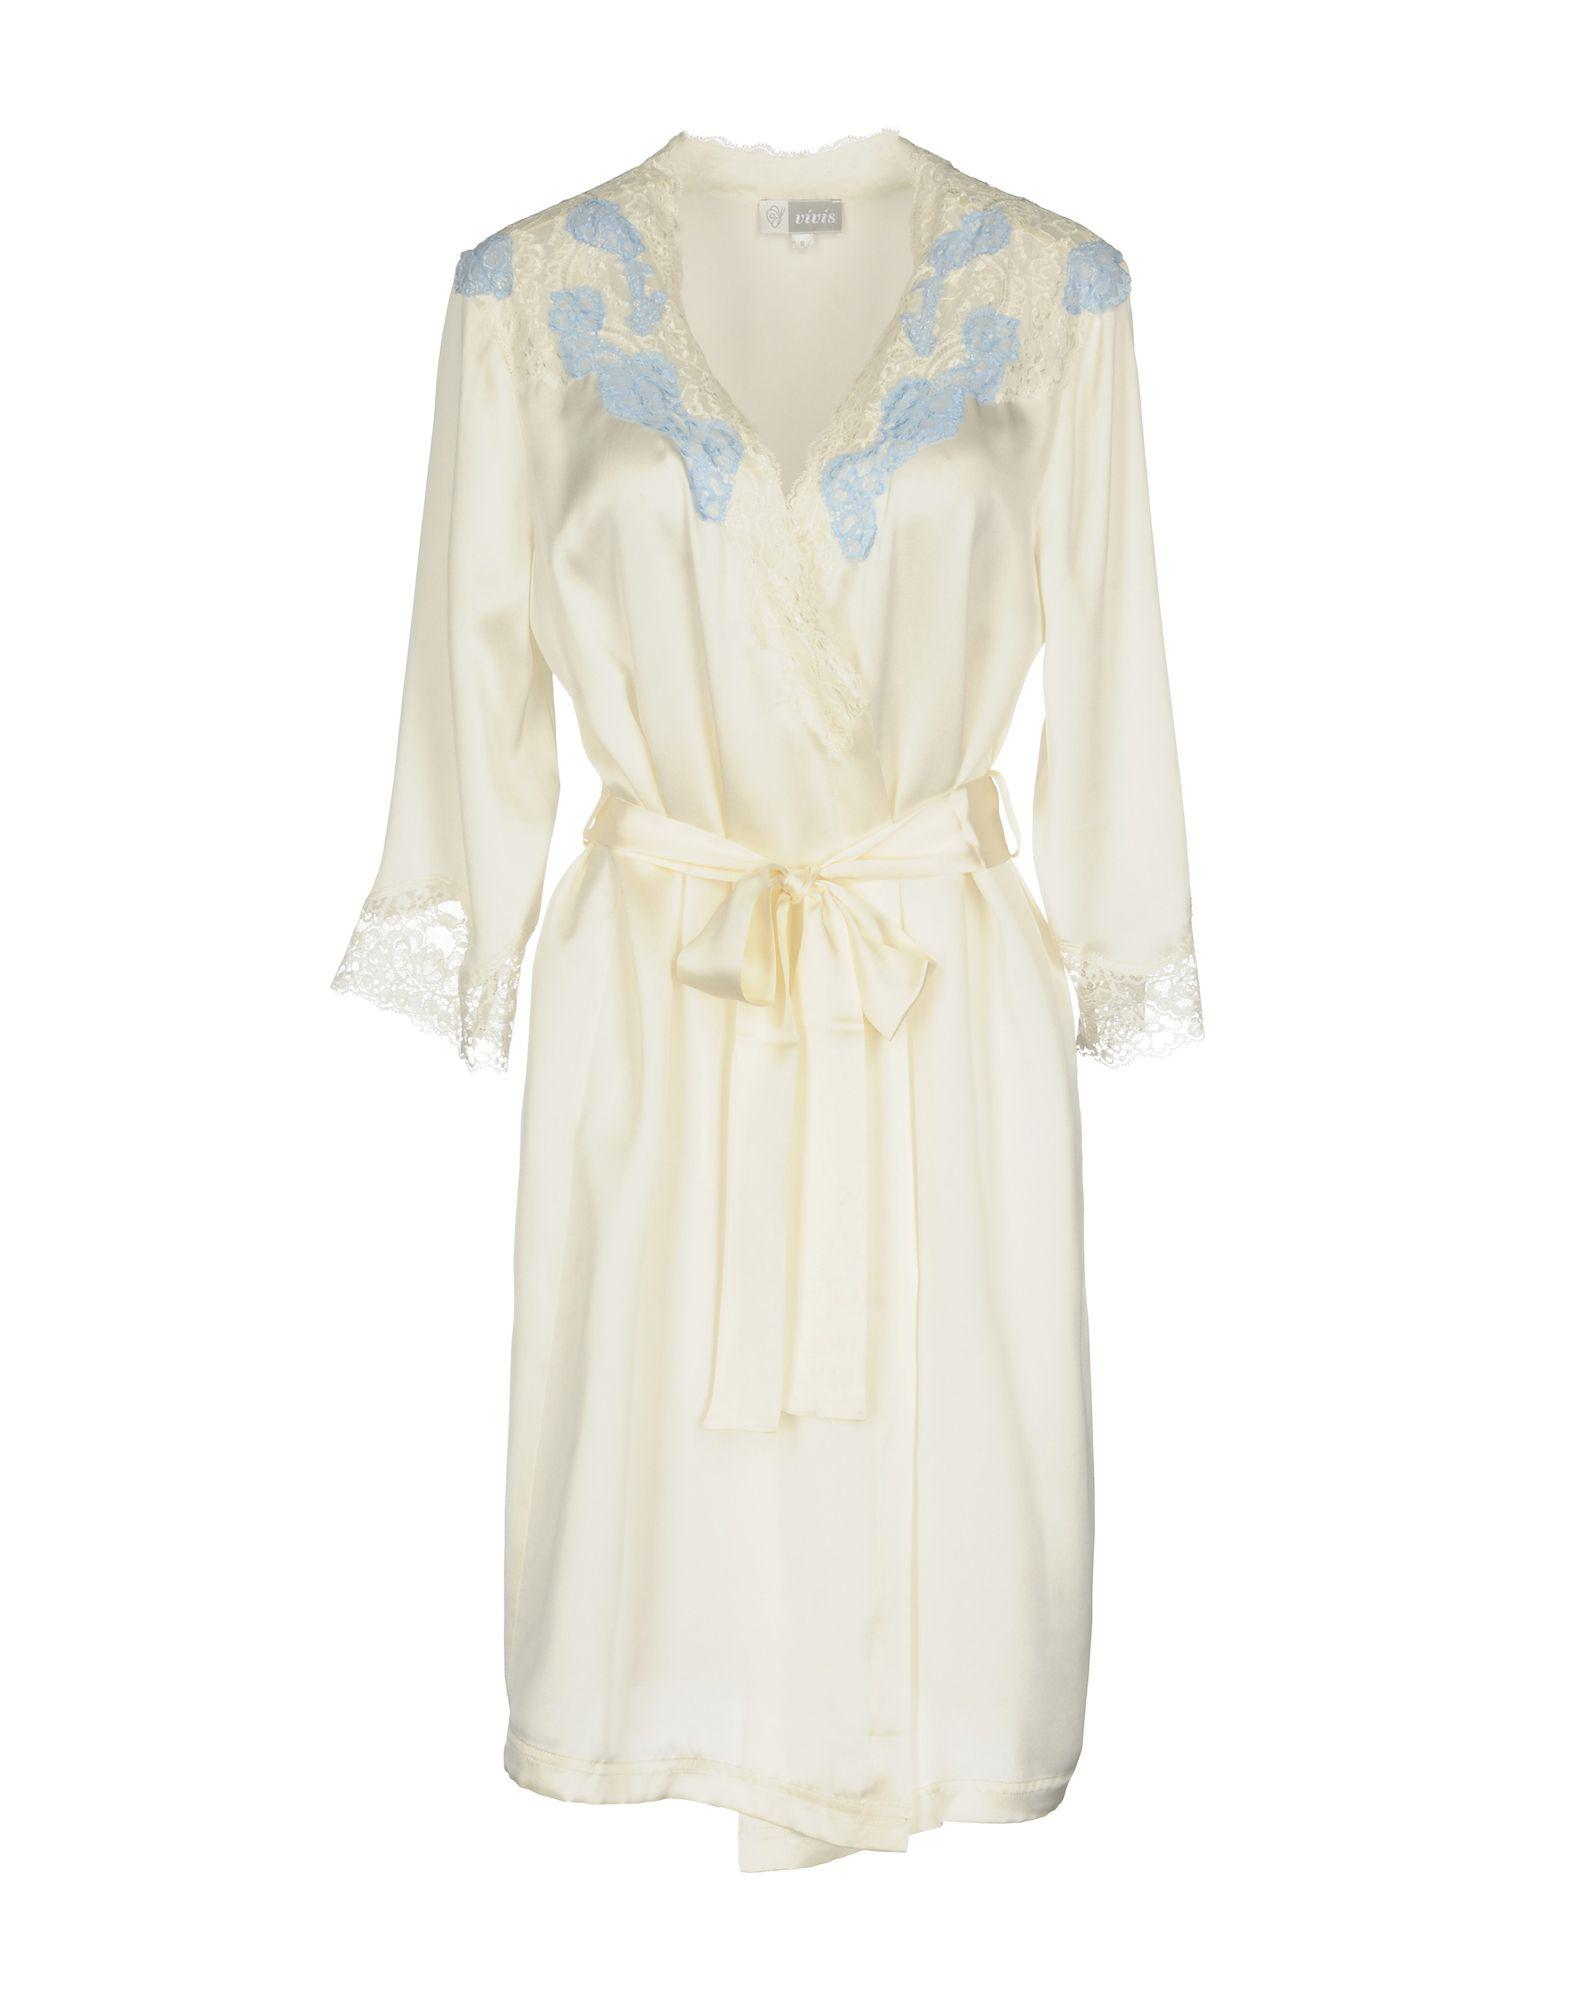 5d558833f3 Lyst - Vivis Dressing Gown in White